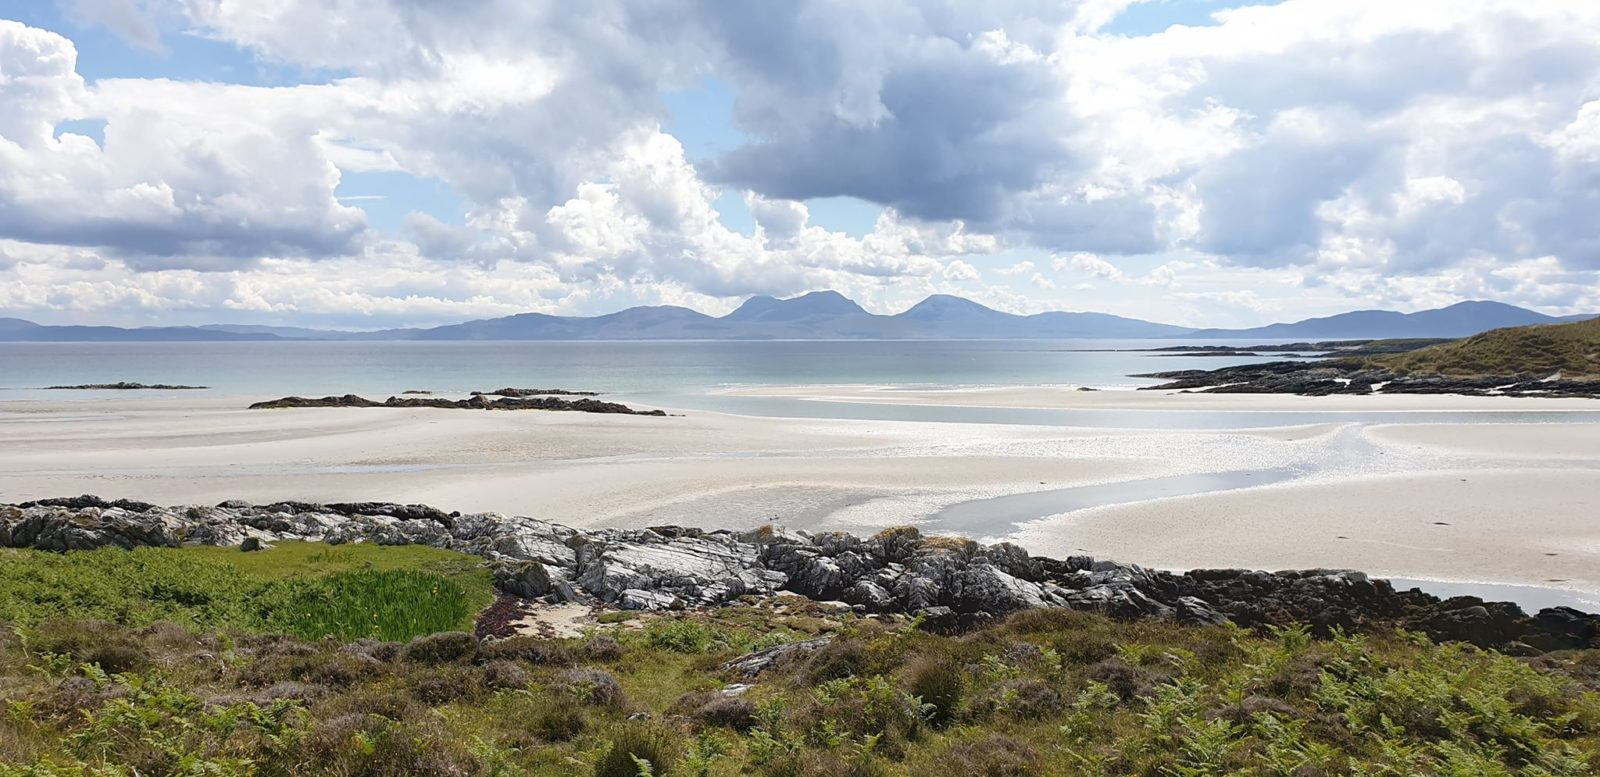 One Of Scotland's Most Beautiful Islands With Stunning White Sand Beaches Now Offers A Gin Retreat With Over 200 Gins photo